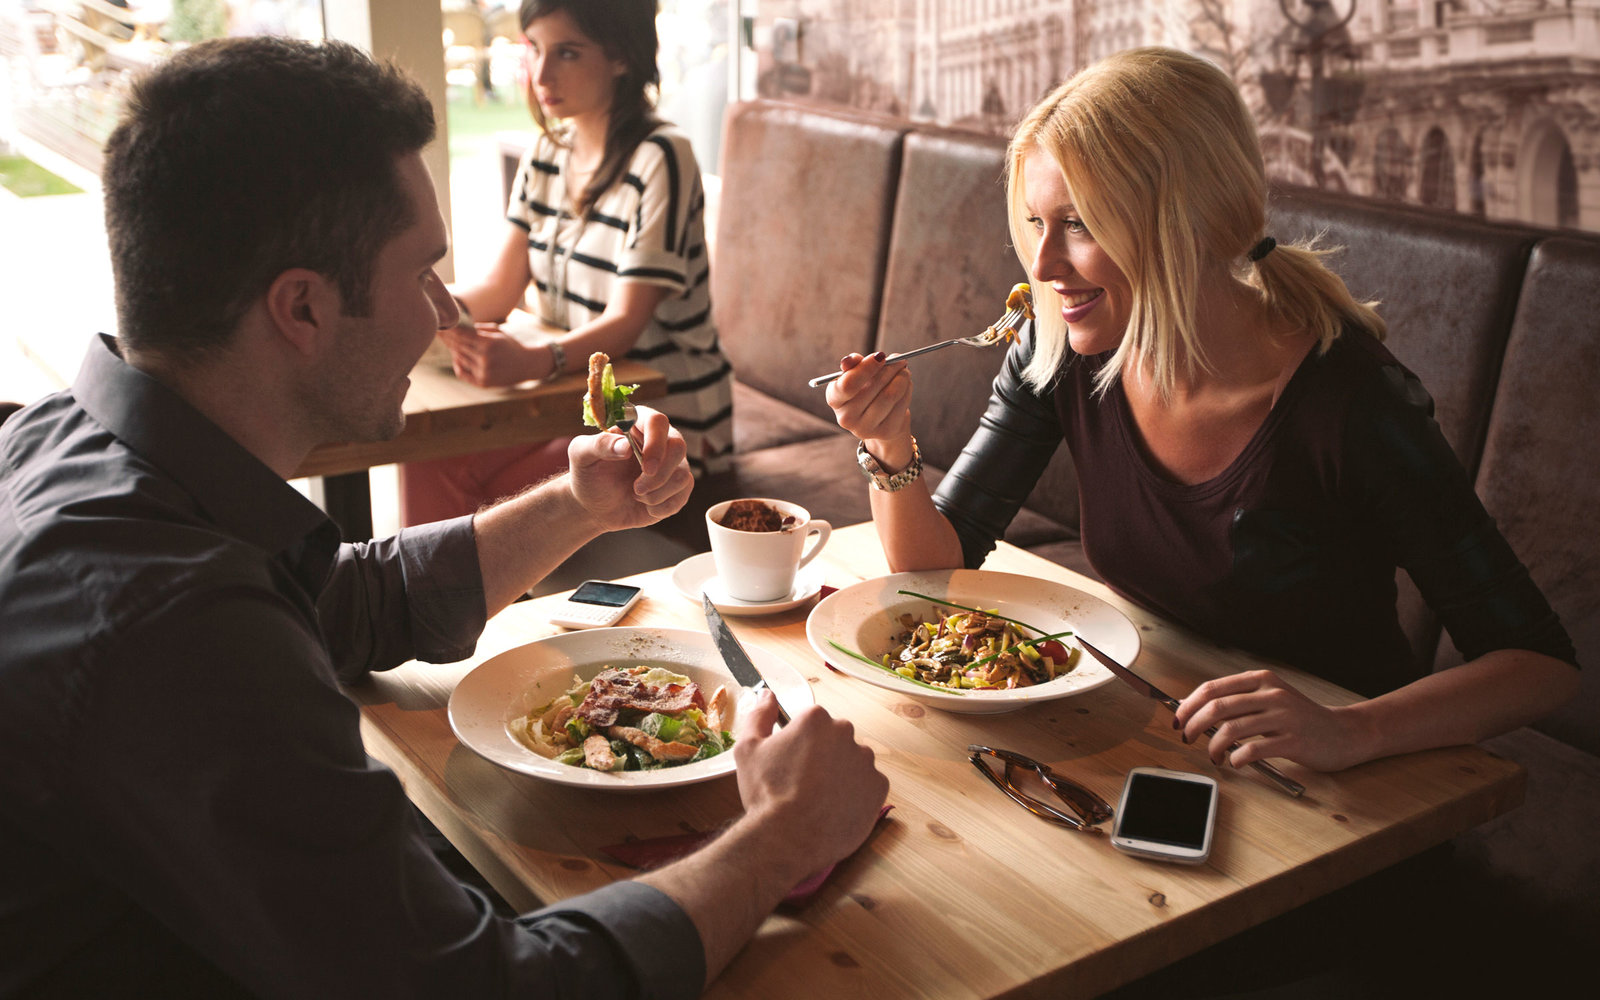 5 Things Research Says You Should Talk About On A First Date